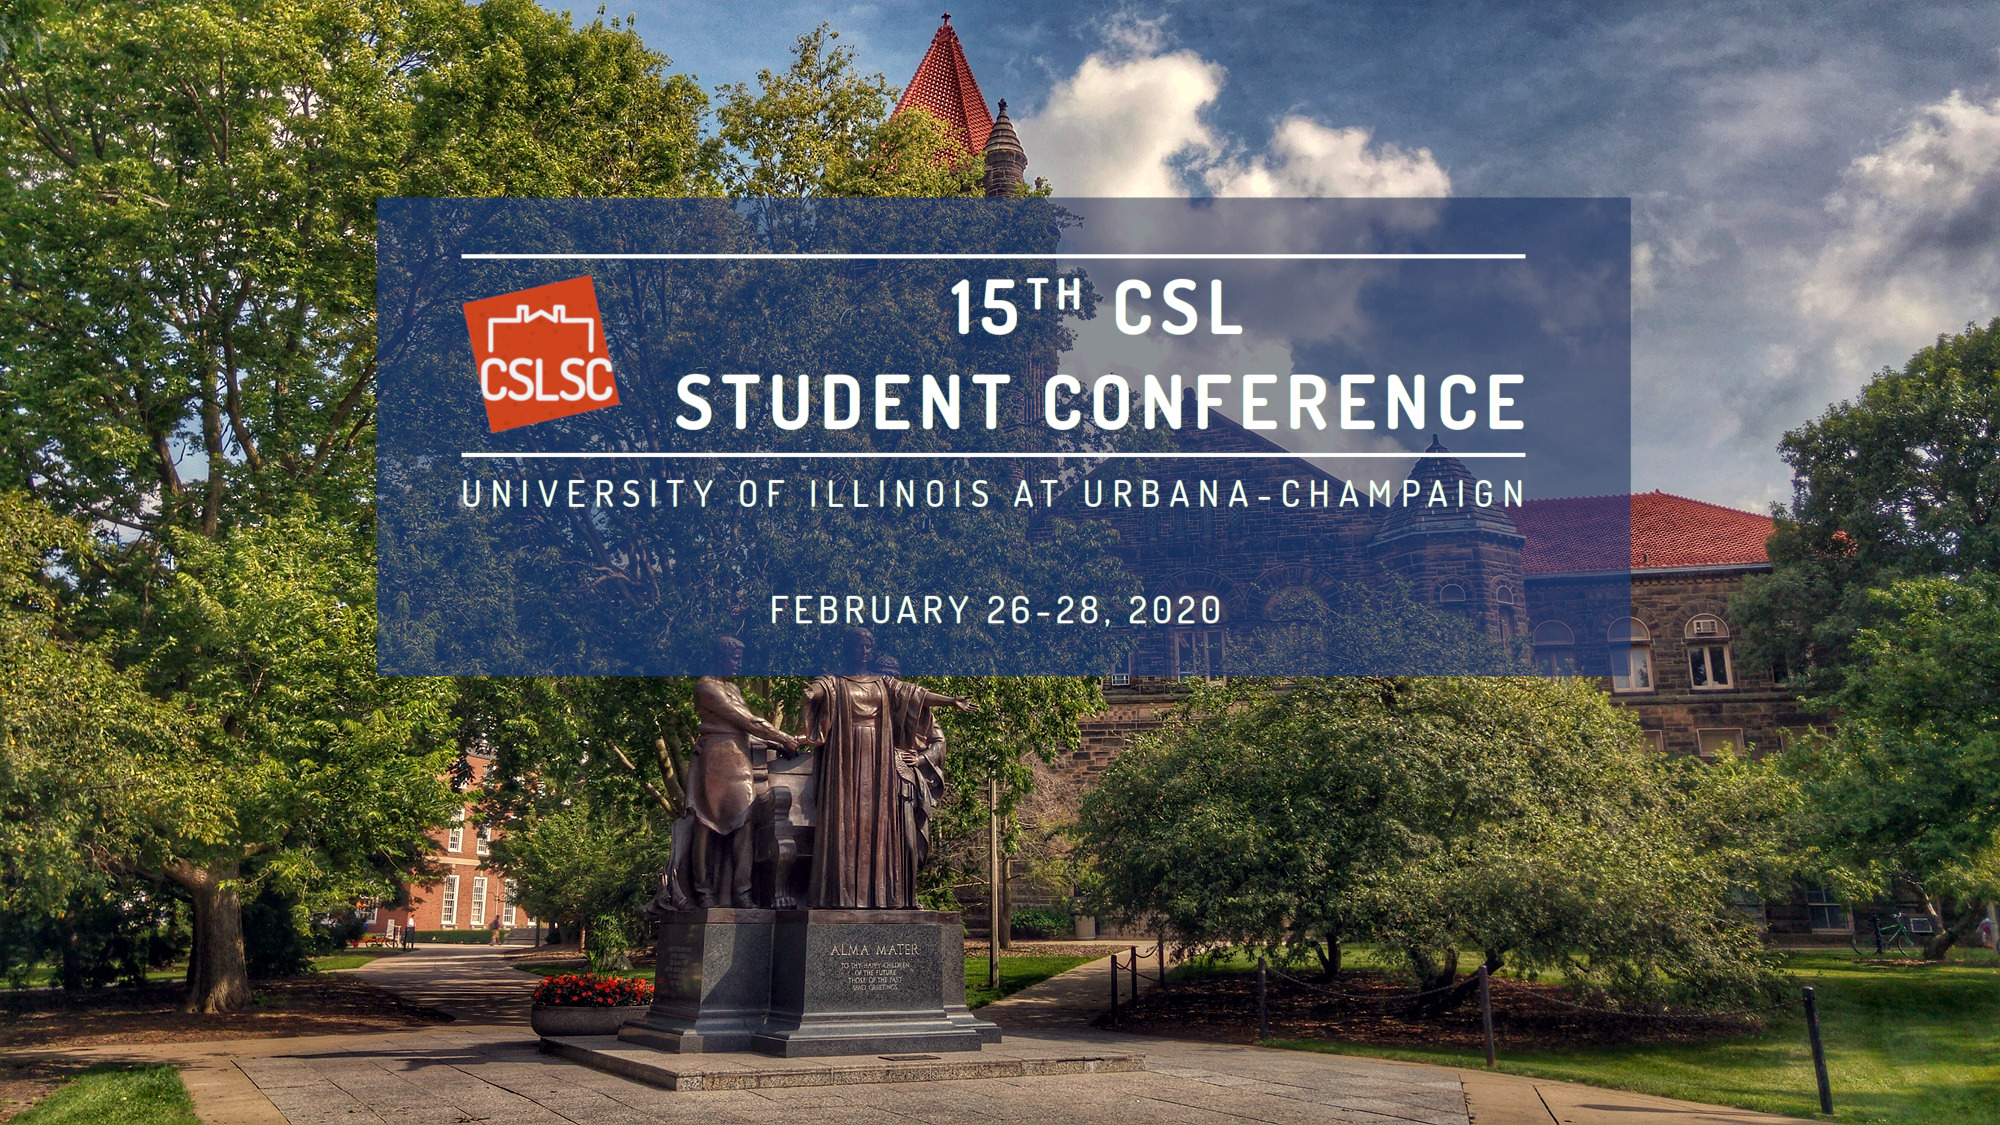 CSL Student Conference 2020